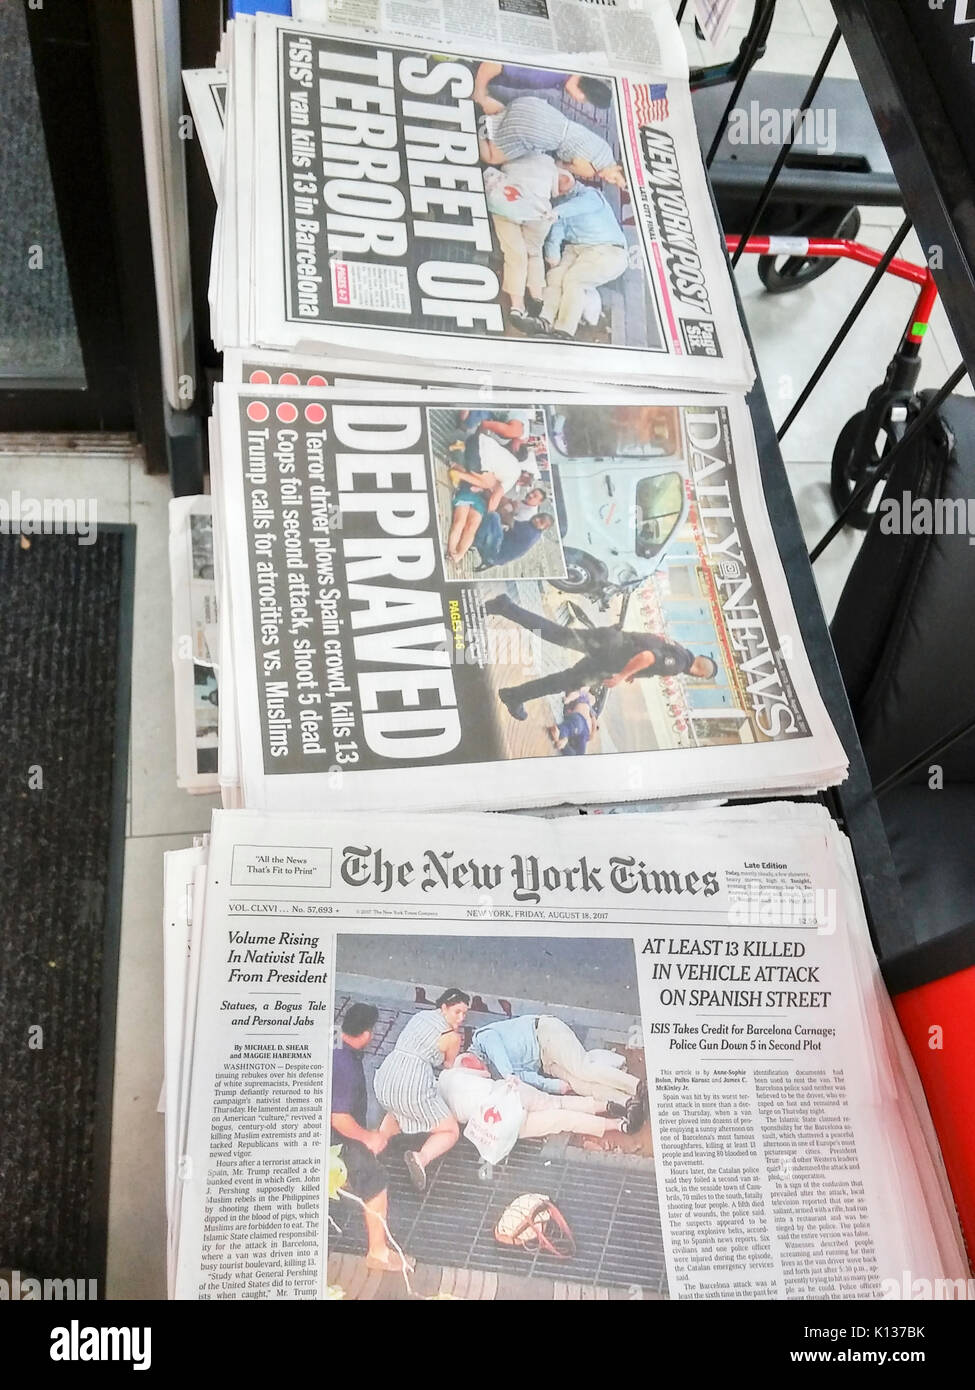 New York newspapers on Friday, August 18, 2017 report on the previous night's terrorist attack in Barcelona, Spain which left 13 dead and over 100 injured. (© Richard B. Levine) Stock Photo